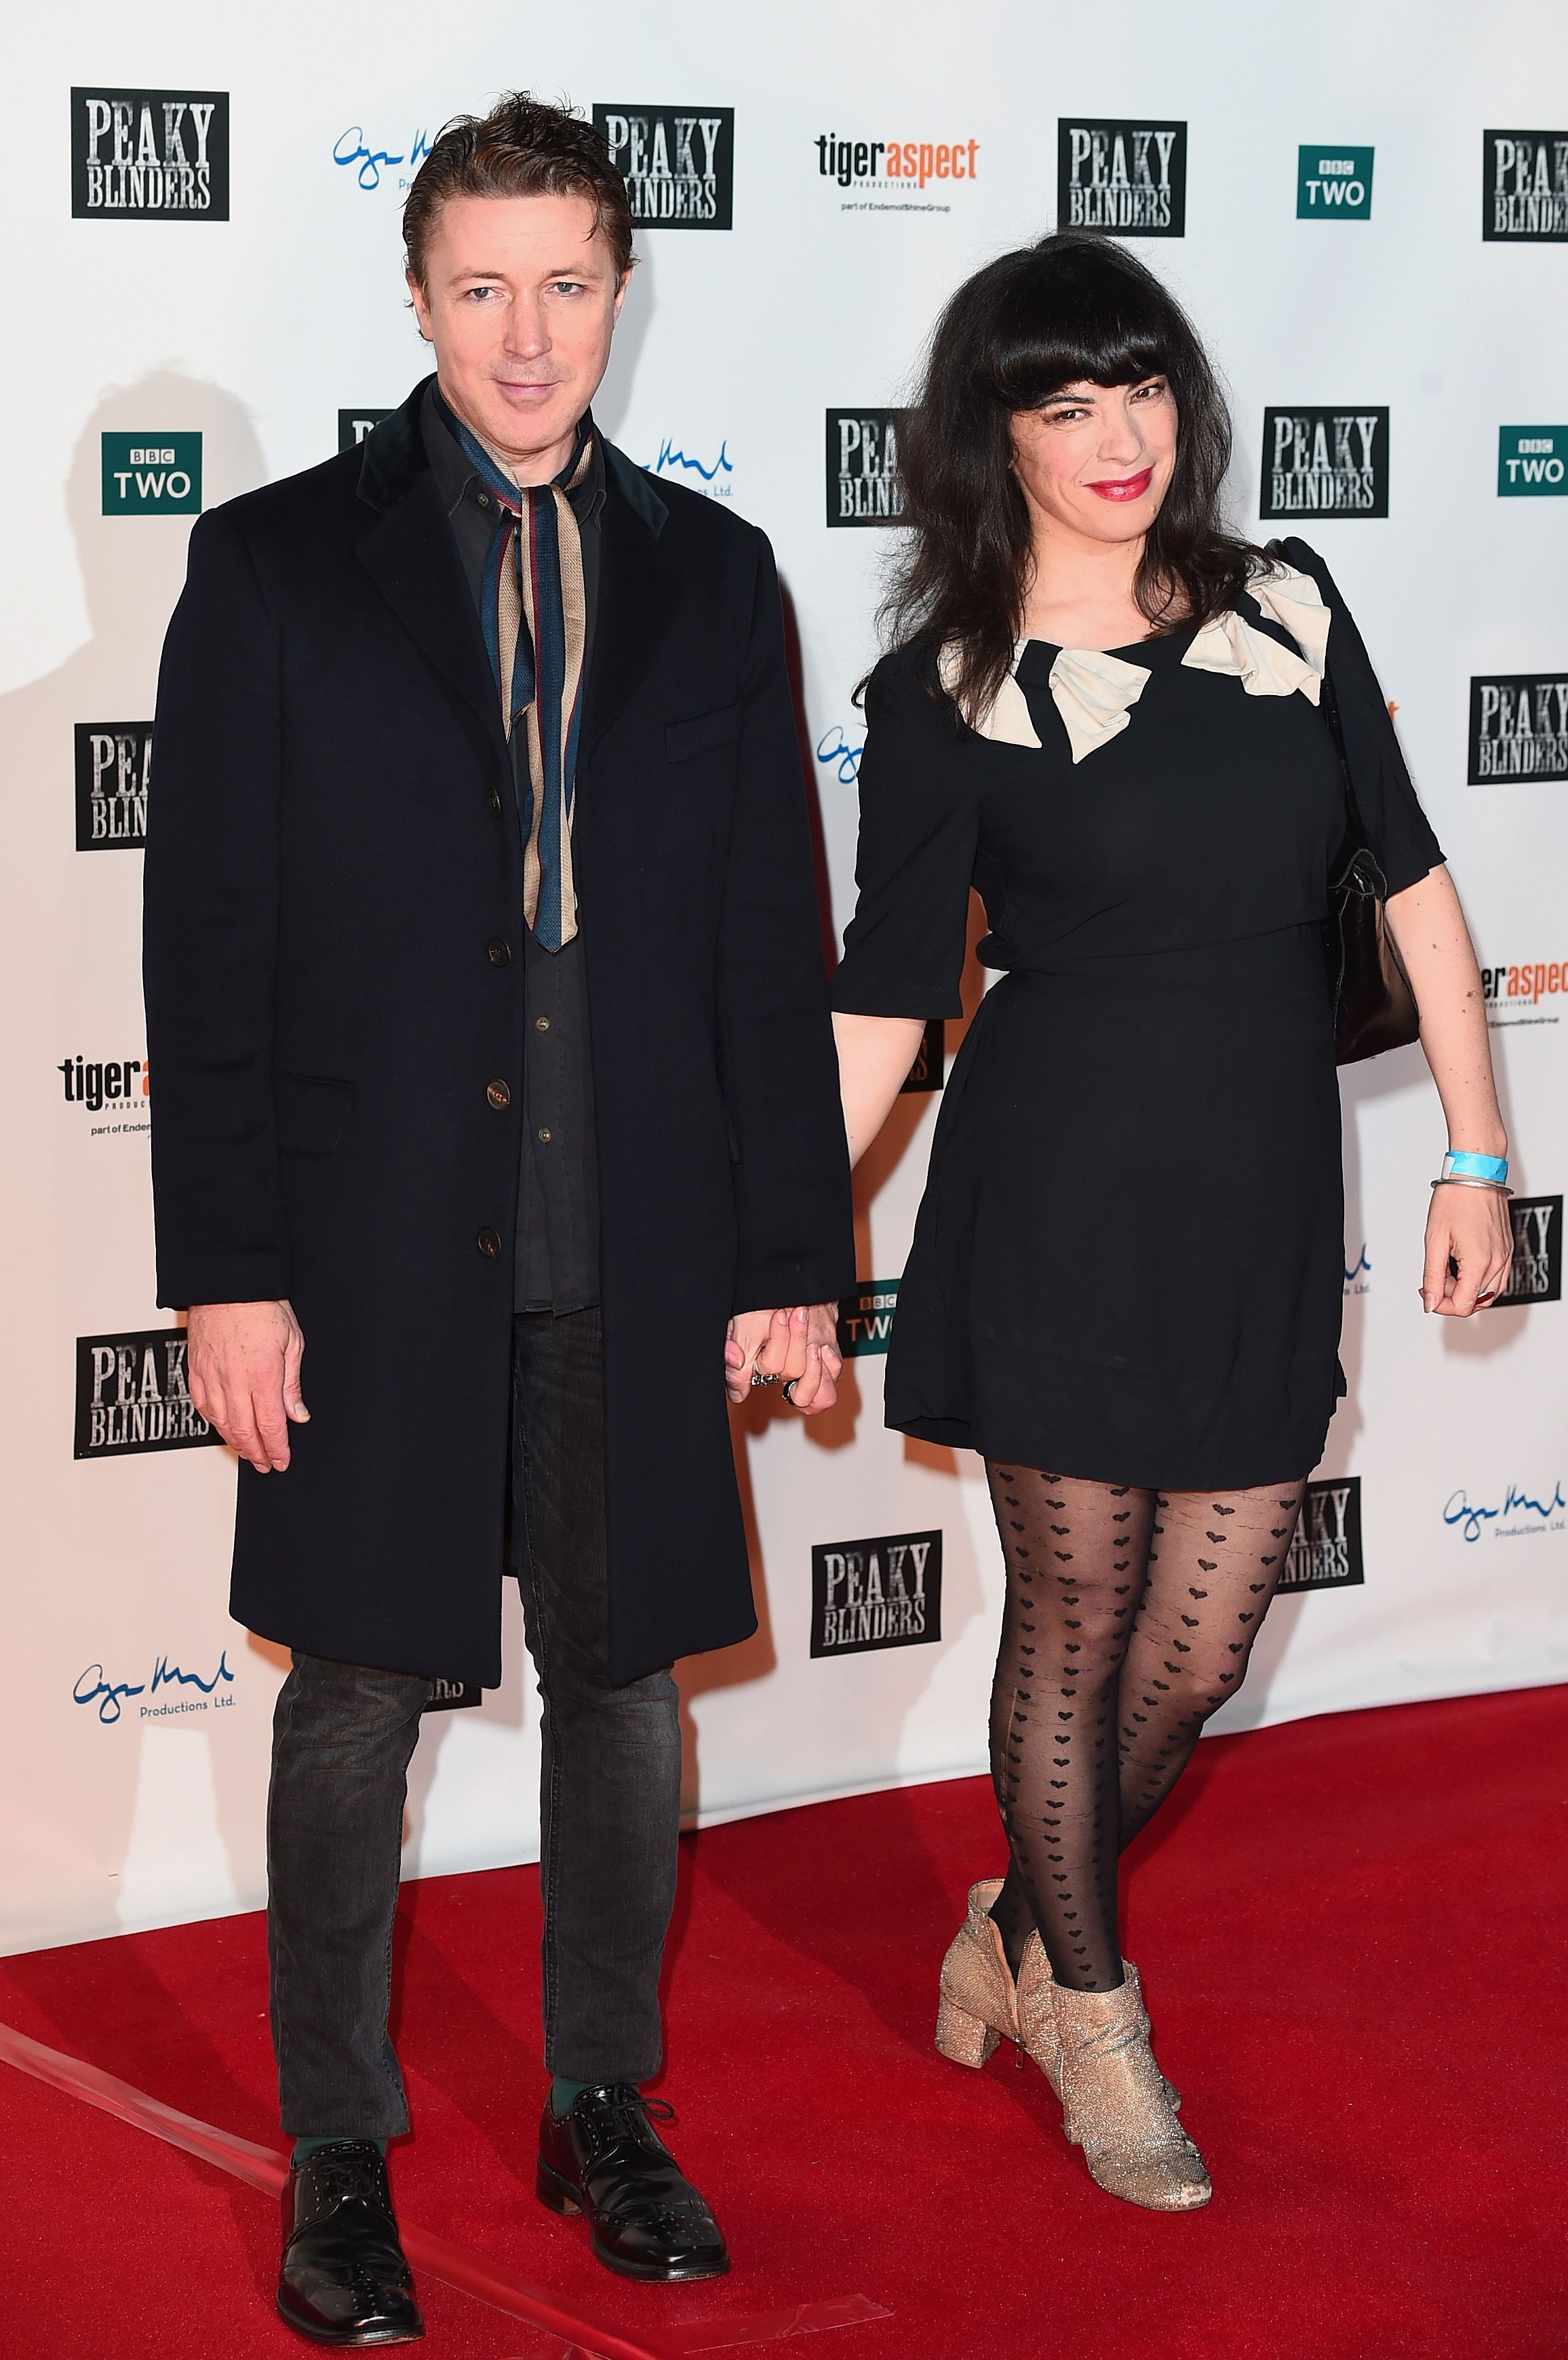 Aidan Gillen (Petyr Baelish) and Camille O'Sullivan The couple were first spotted together in 2015.